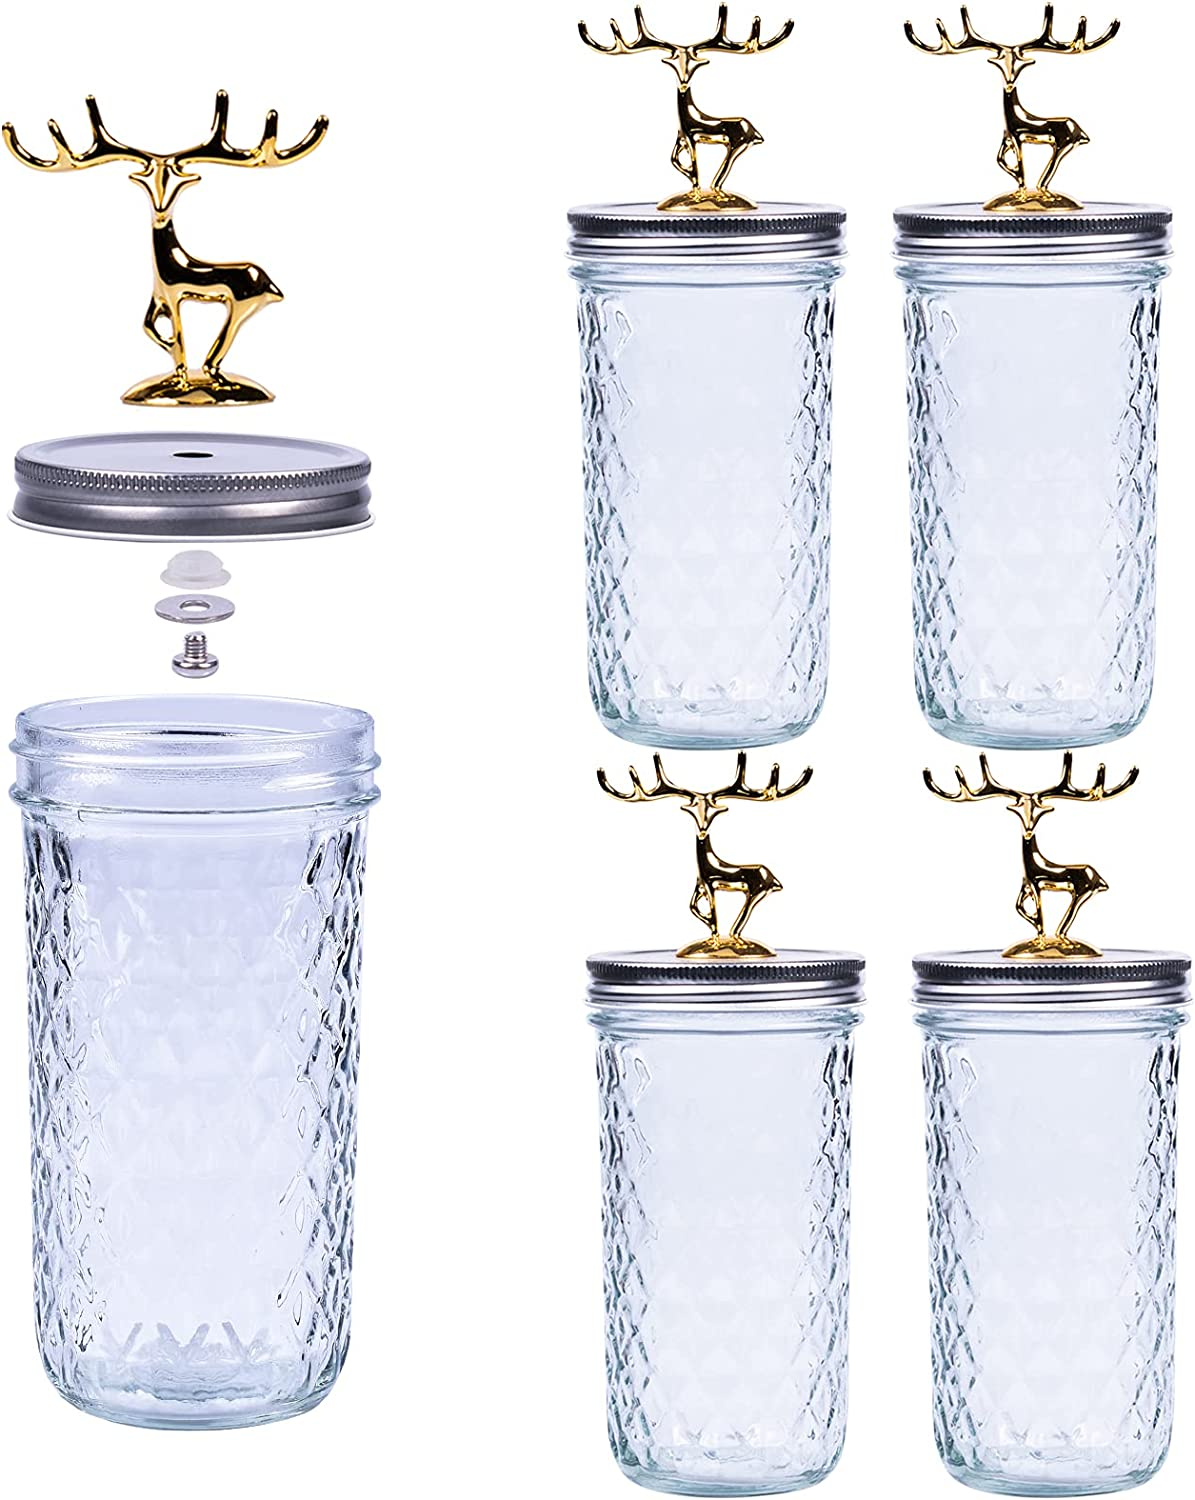 Wide Mouth Mason Jars 22 oz with Lids, TOBERGO Canning Jars 4 PACK comes with Decorative Golden Deer, Glass Jars, Ideal for DIY, Food Storage, Wedding Favors, Jam, Body Butters, Jelly